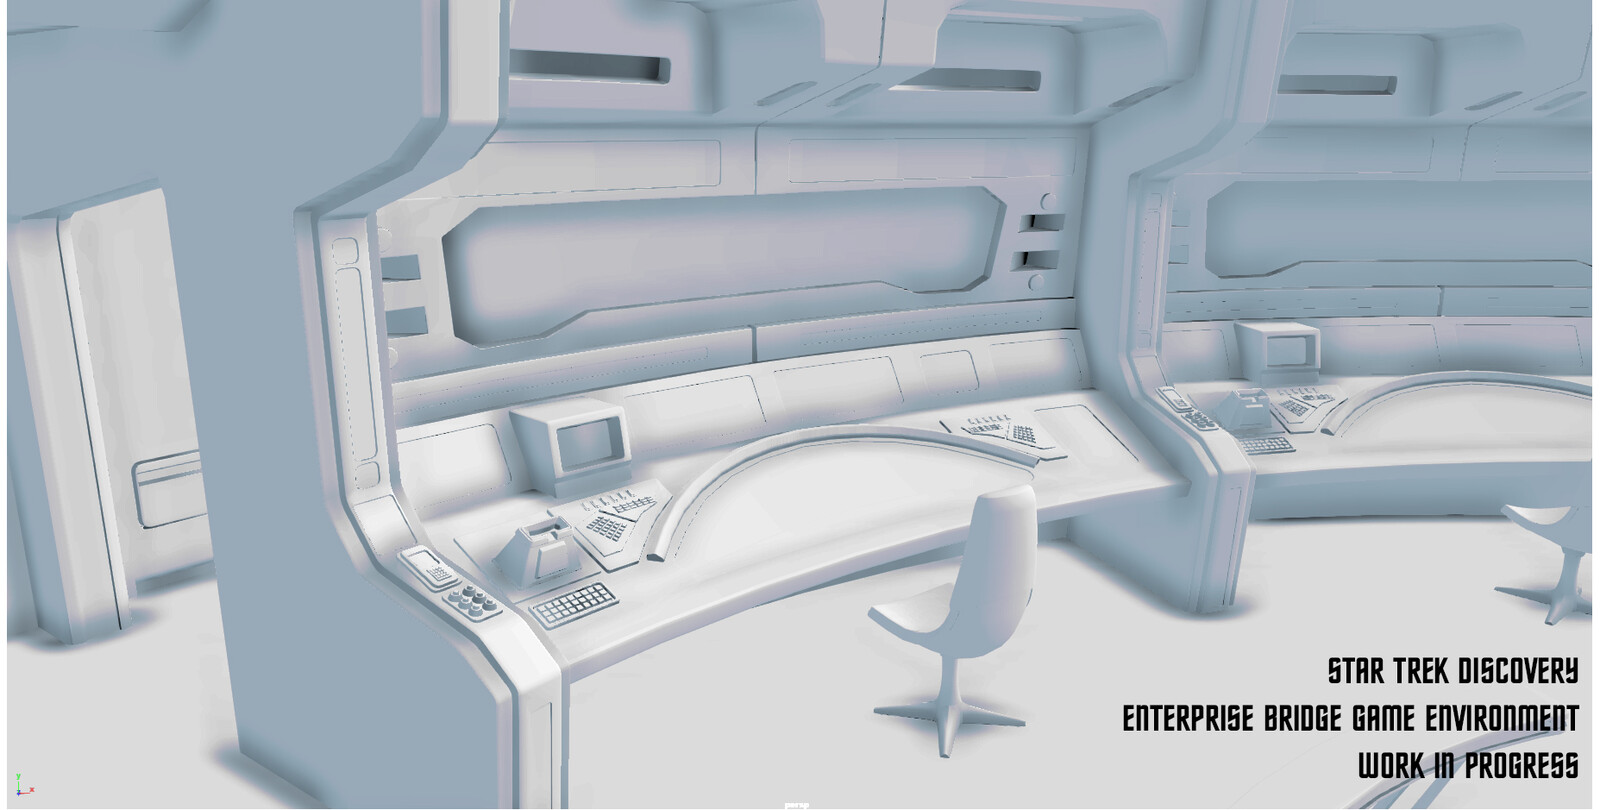 I am currently recreating the re-imagined USS NCC-1701Enterprise bridge captained by Christopher Pike from Star Trek Discovery as a real-time environment. (Hence the triangles, CG friends!) I am currently working on texturing and lighting the environment